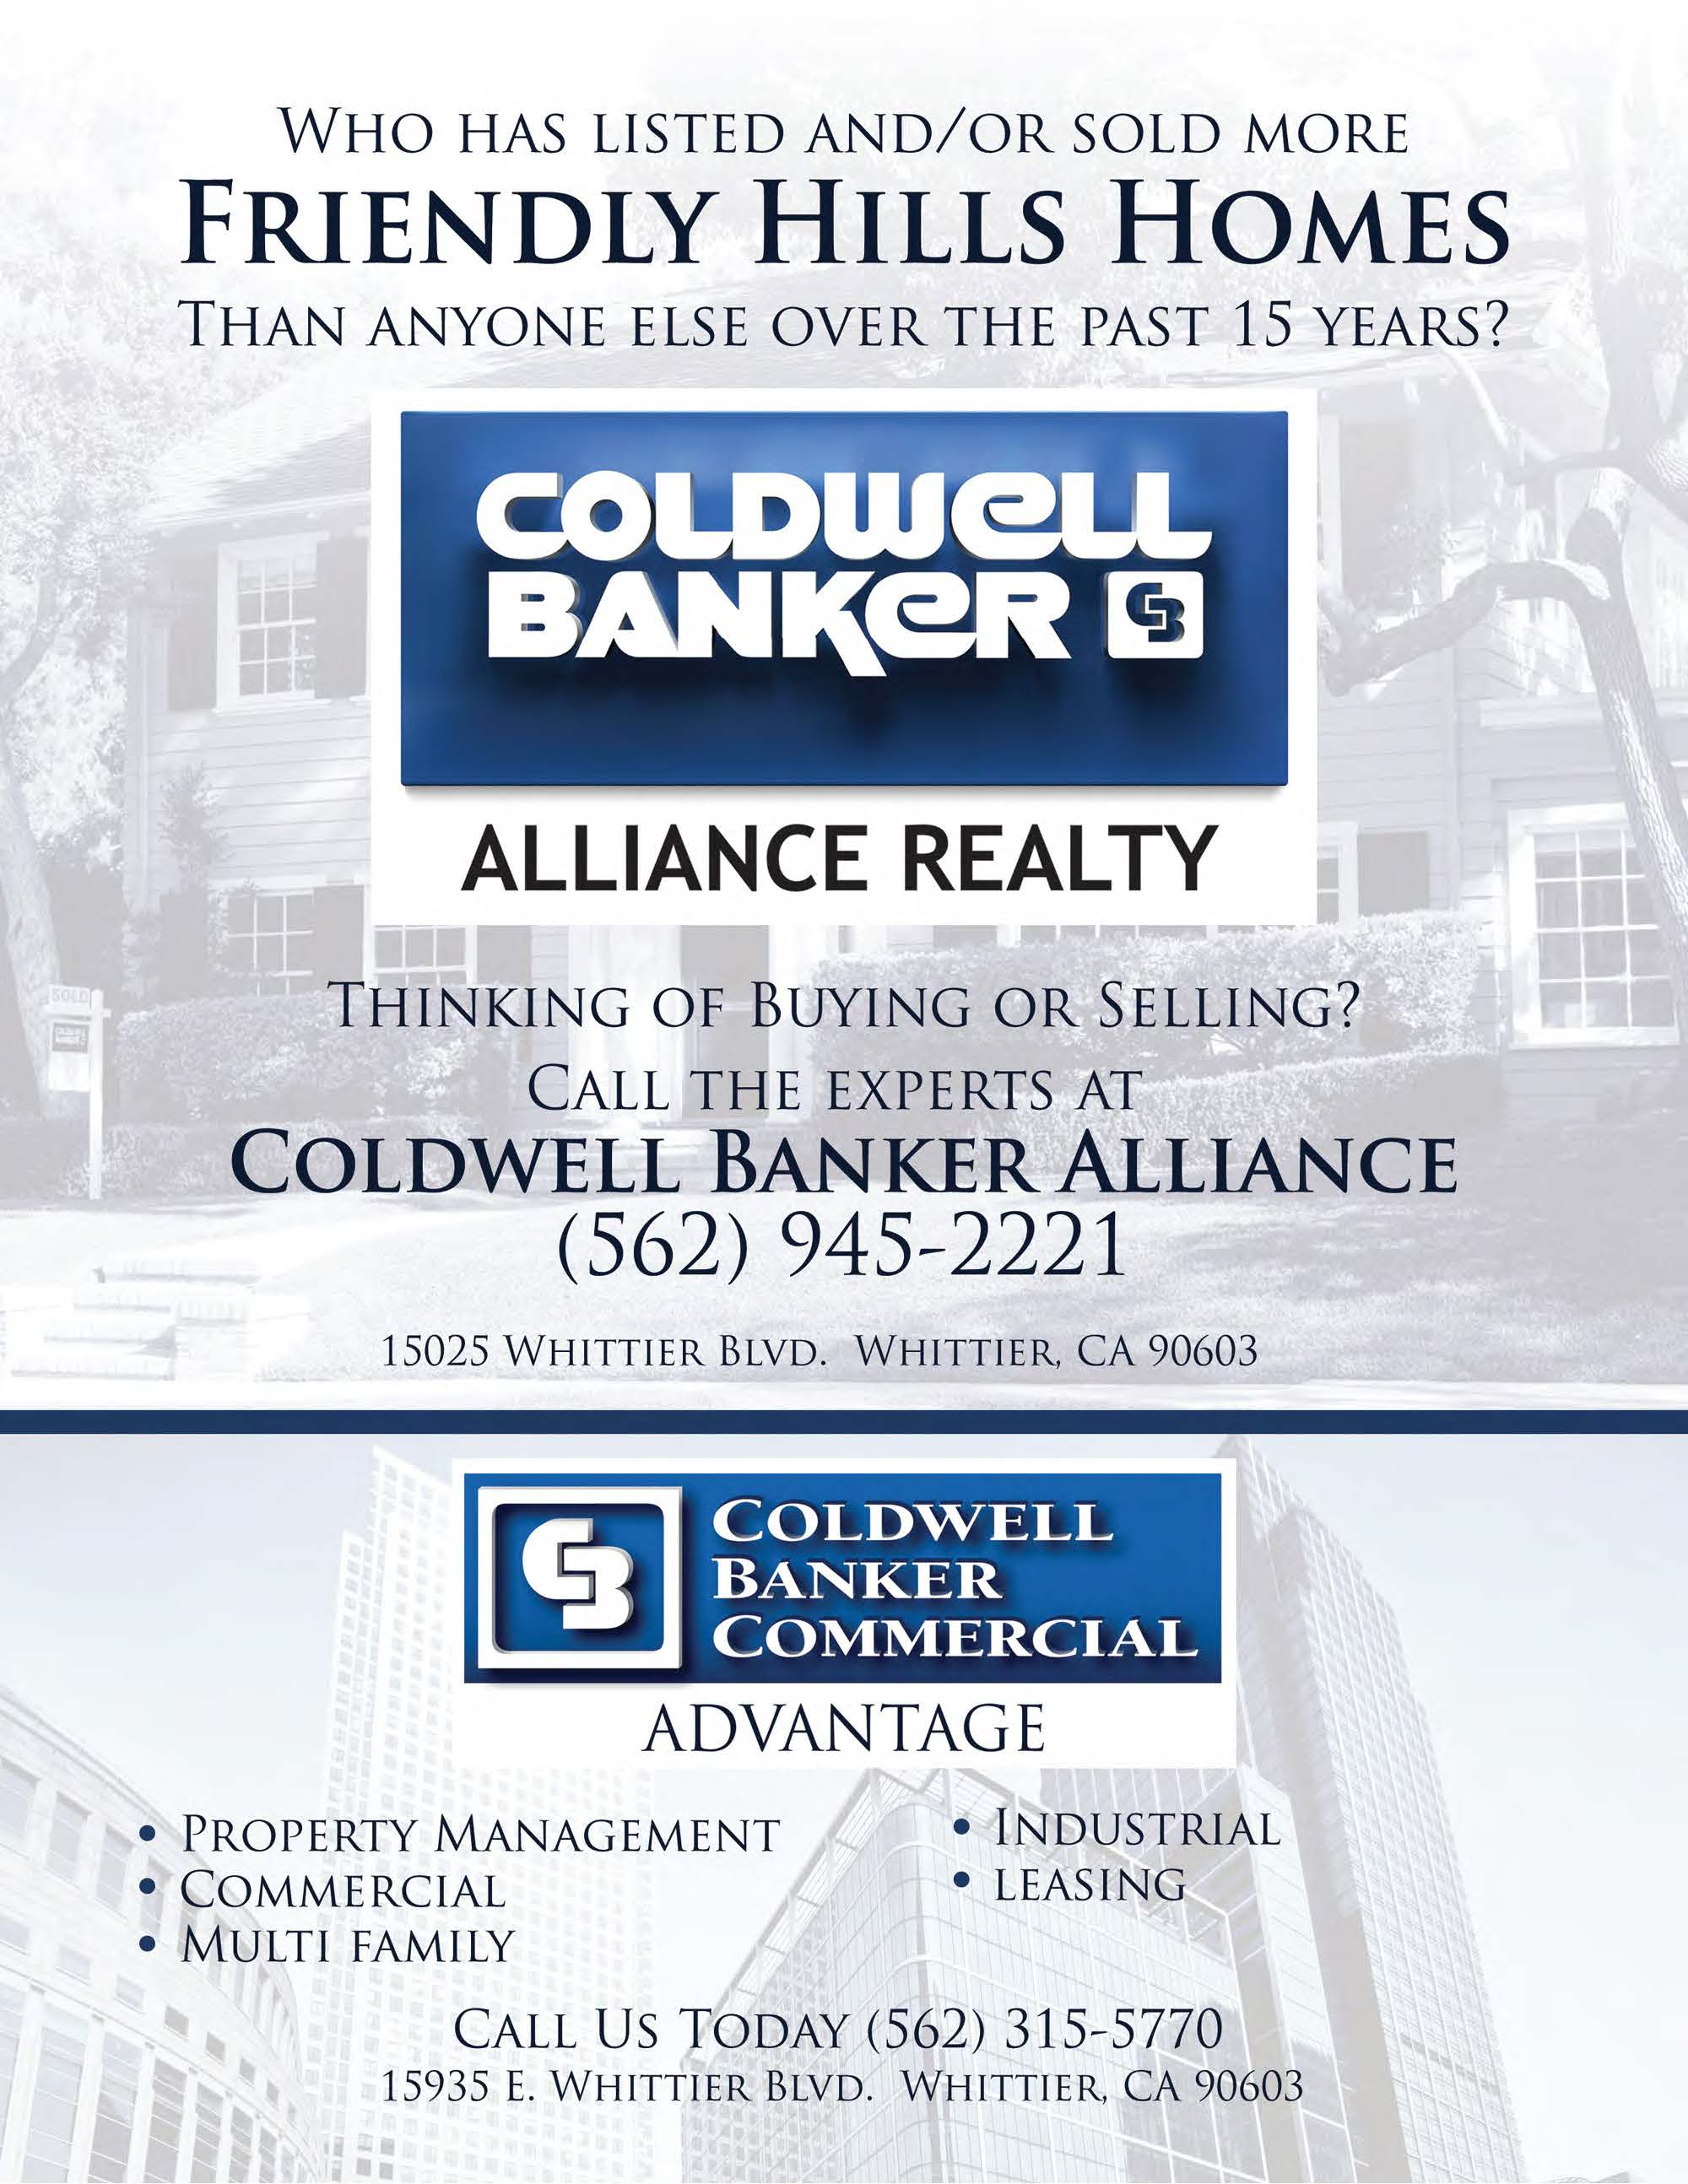 Coldwell Banker Alliance Whittier